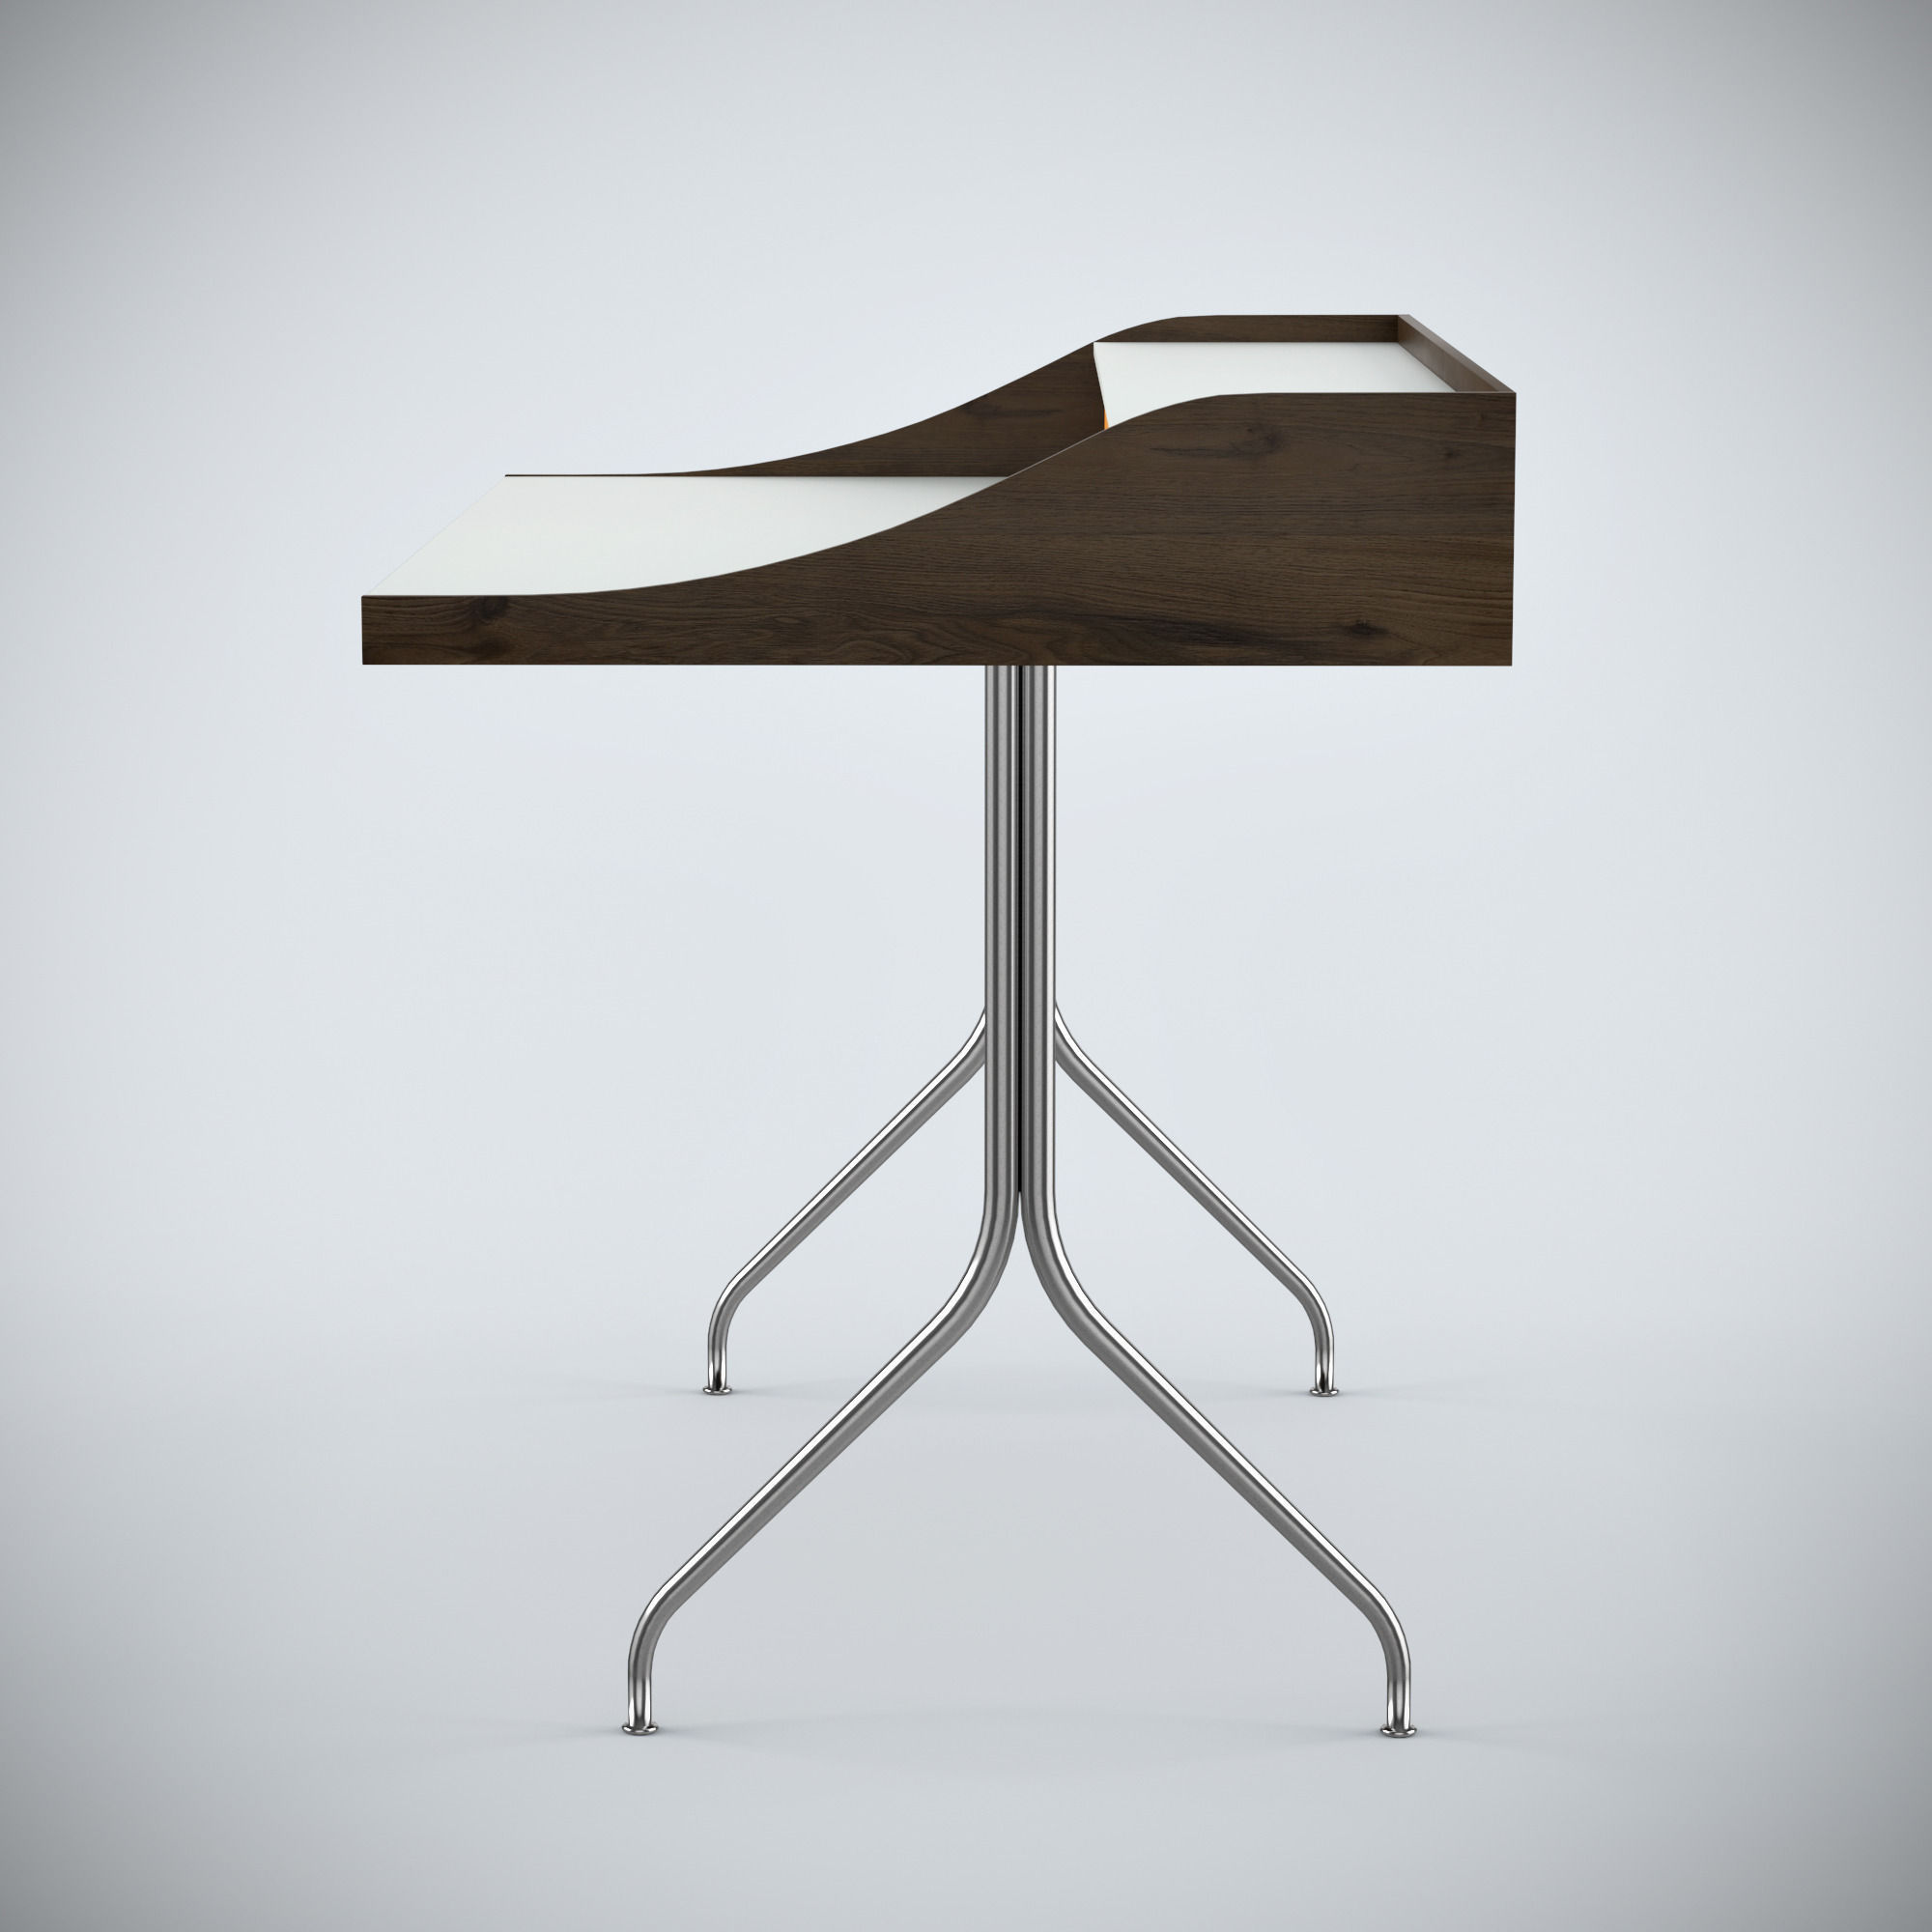 Charmant ... Nelson Swag Leg Desk 3d Model Max Obj 3ds Fbx Mtl 3 ...